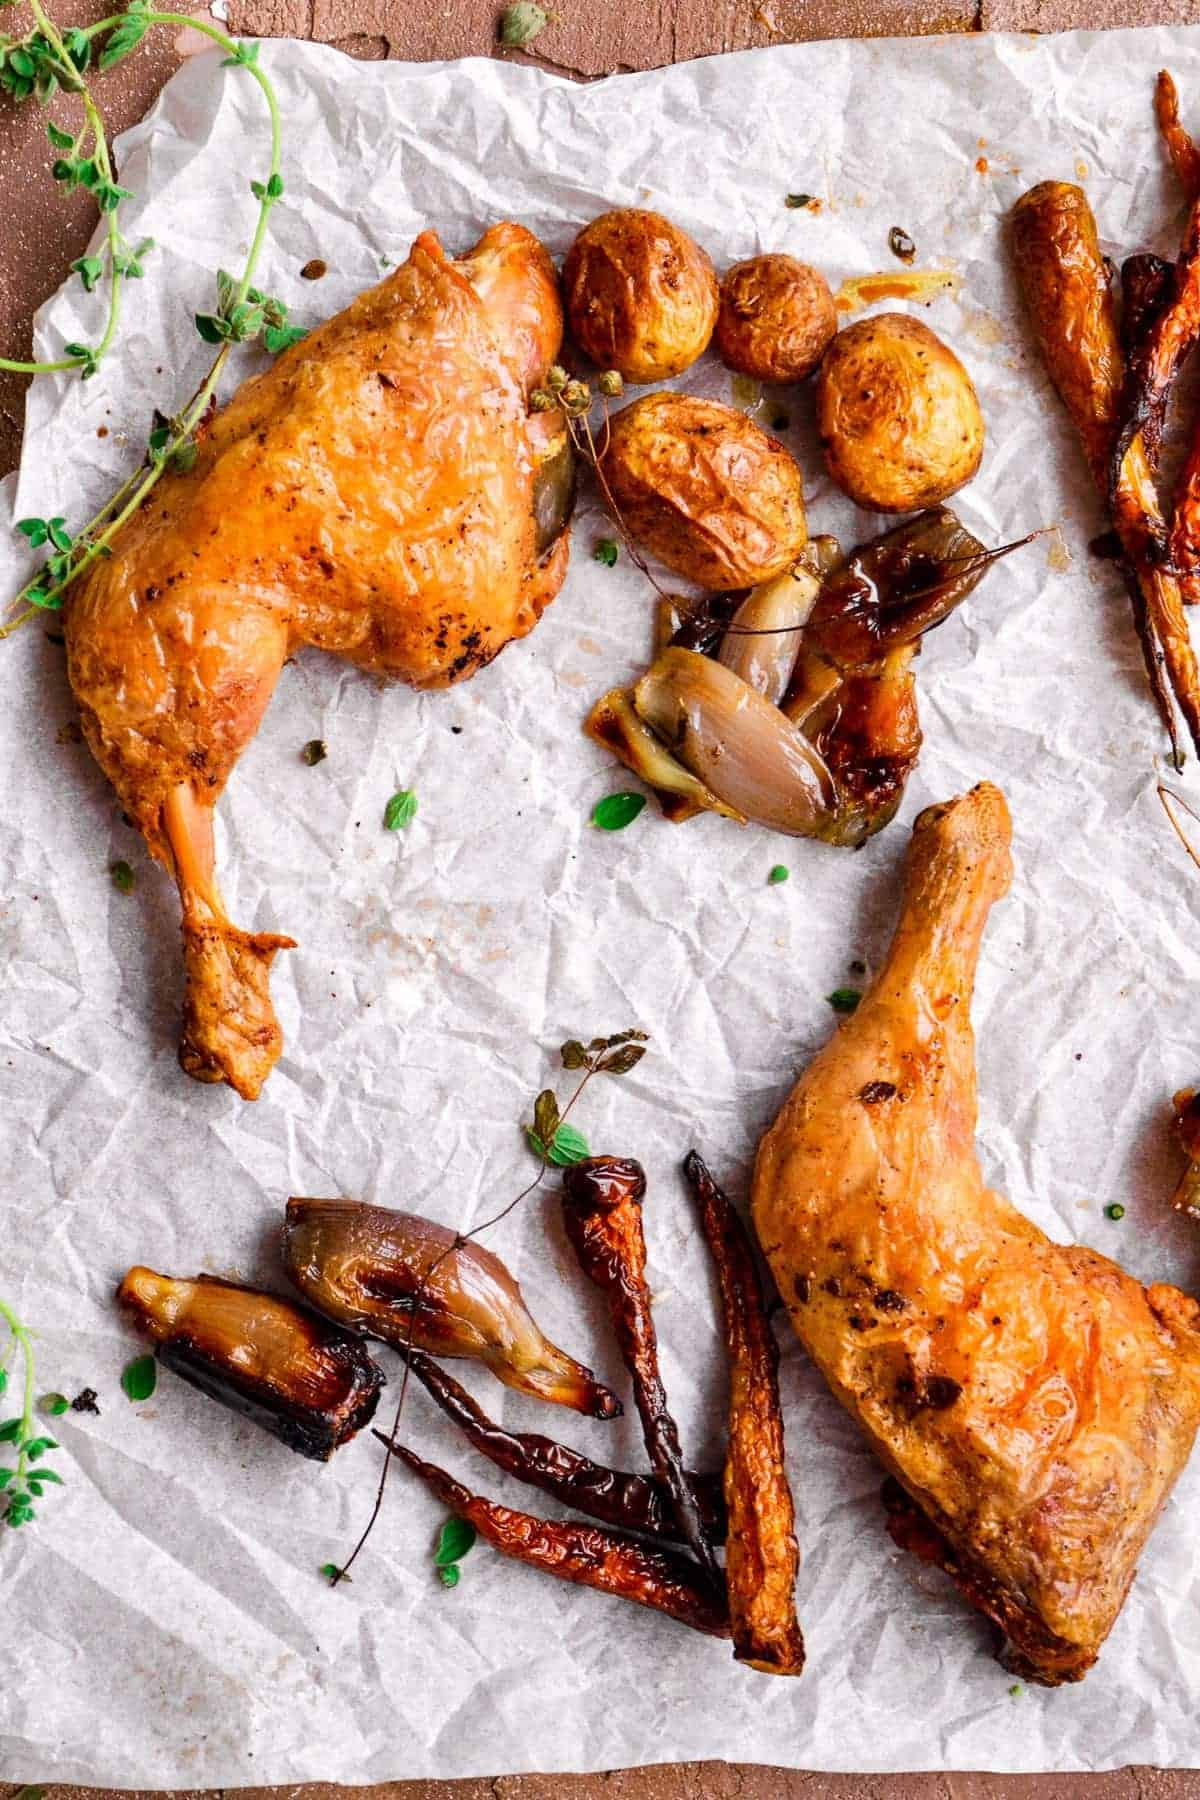 Baked Chicken and Potatoes on parchment paper with carrots and fresh herbs